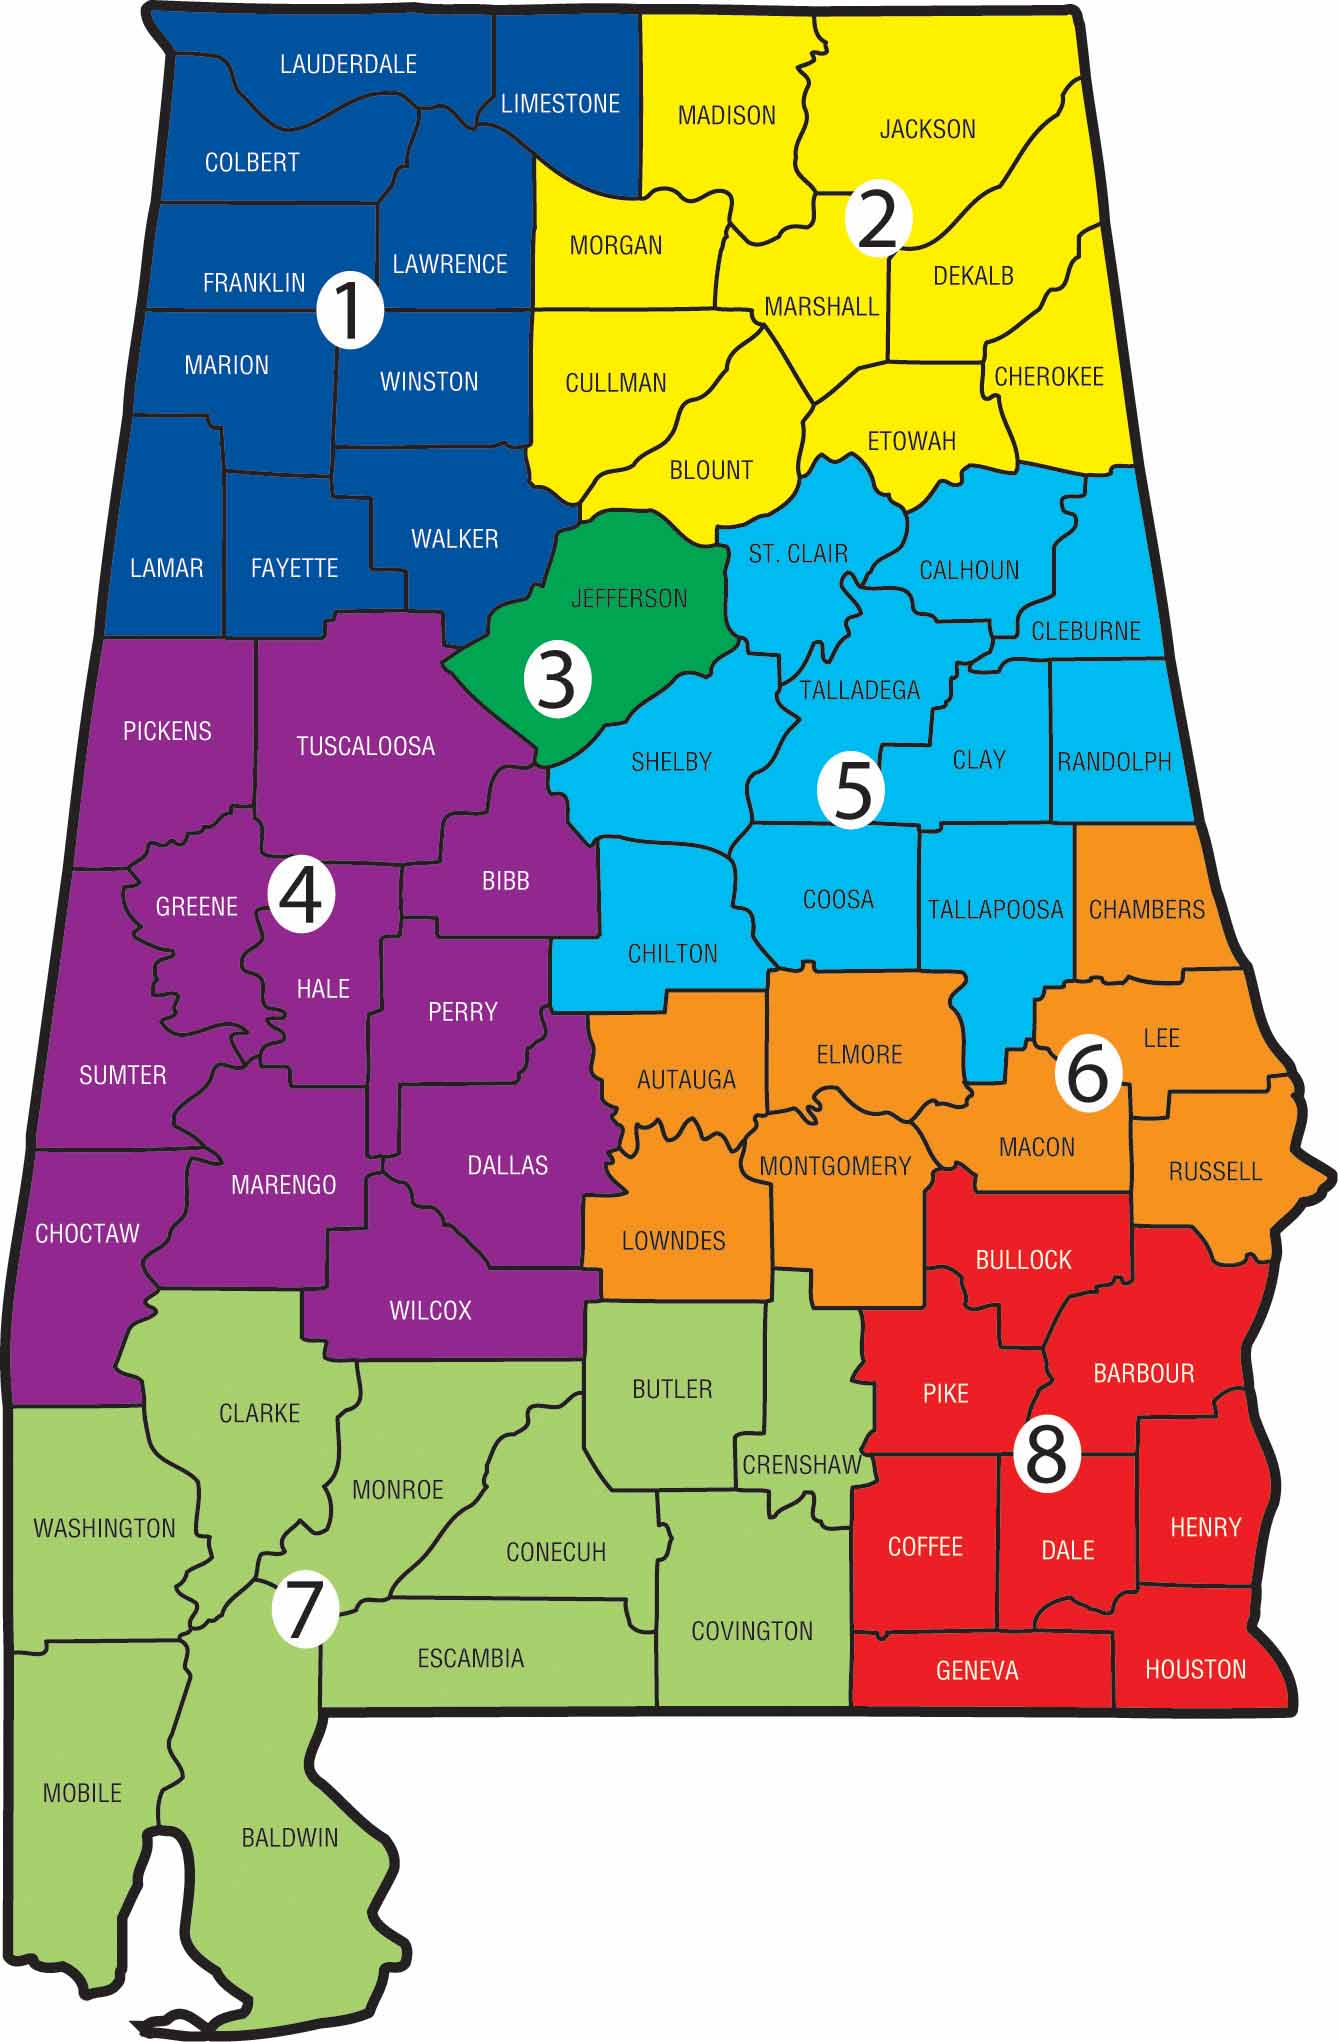 Alabama Counties Map District Map | ACCA Alabama Counties Map